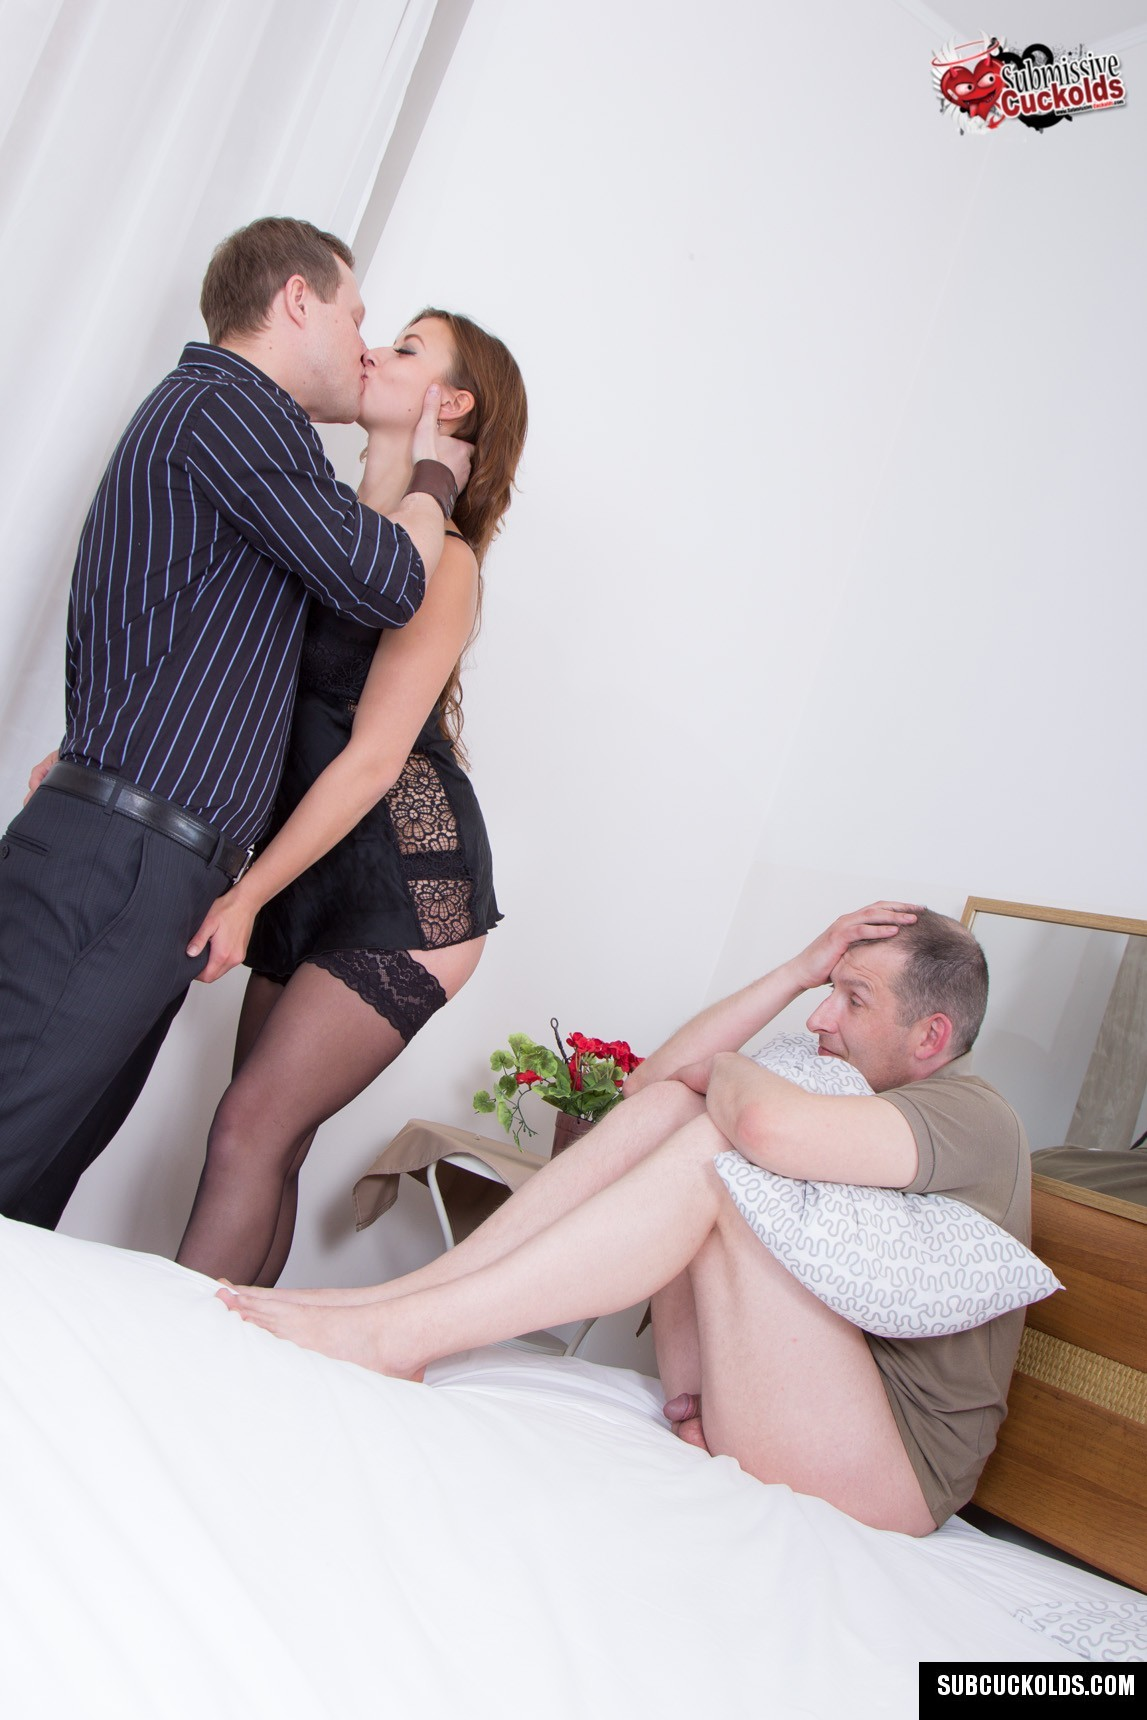 A young cuckold relationship part 3 - 1 part 9